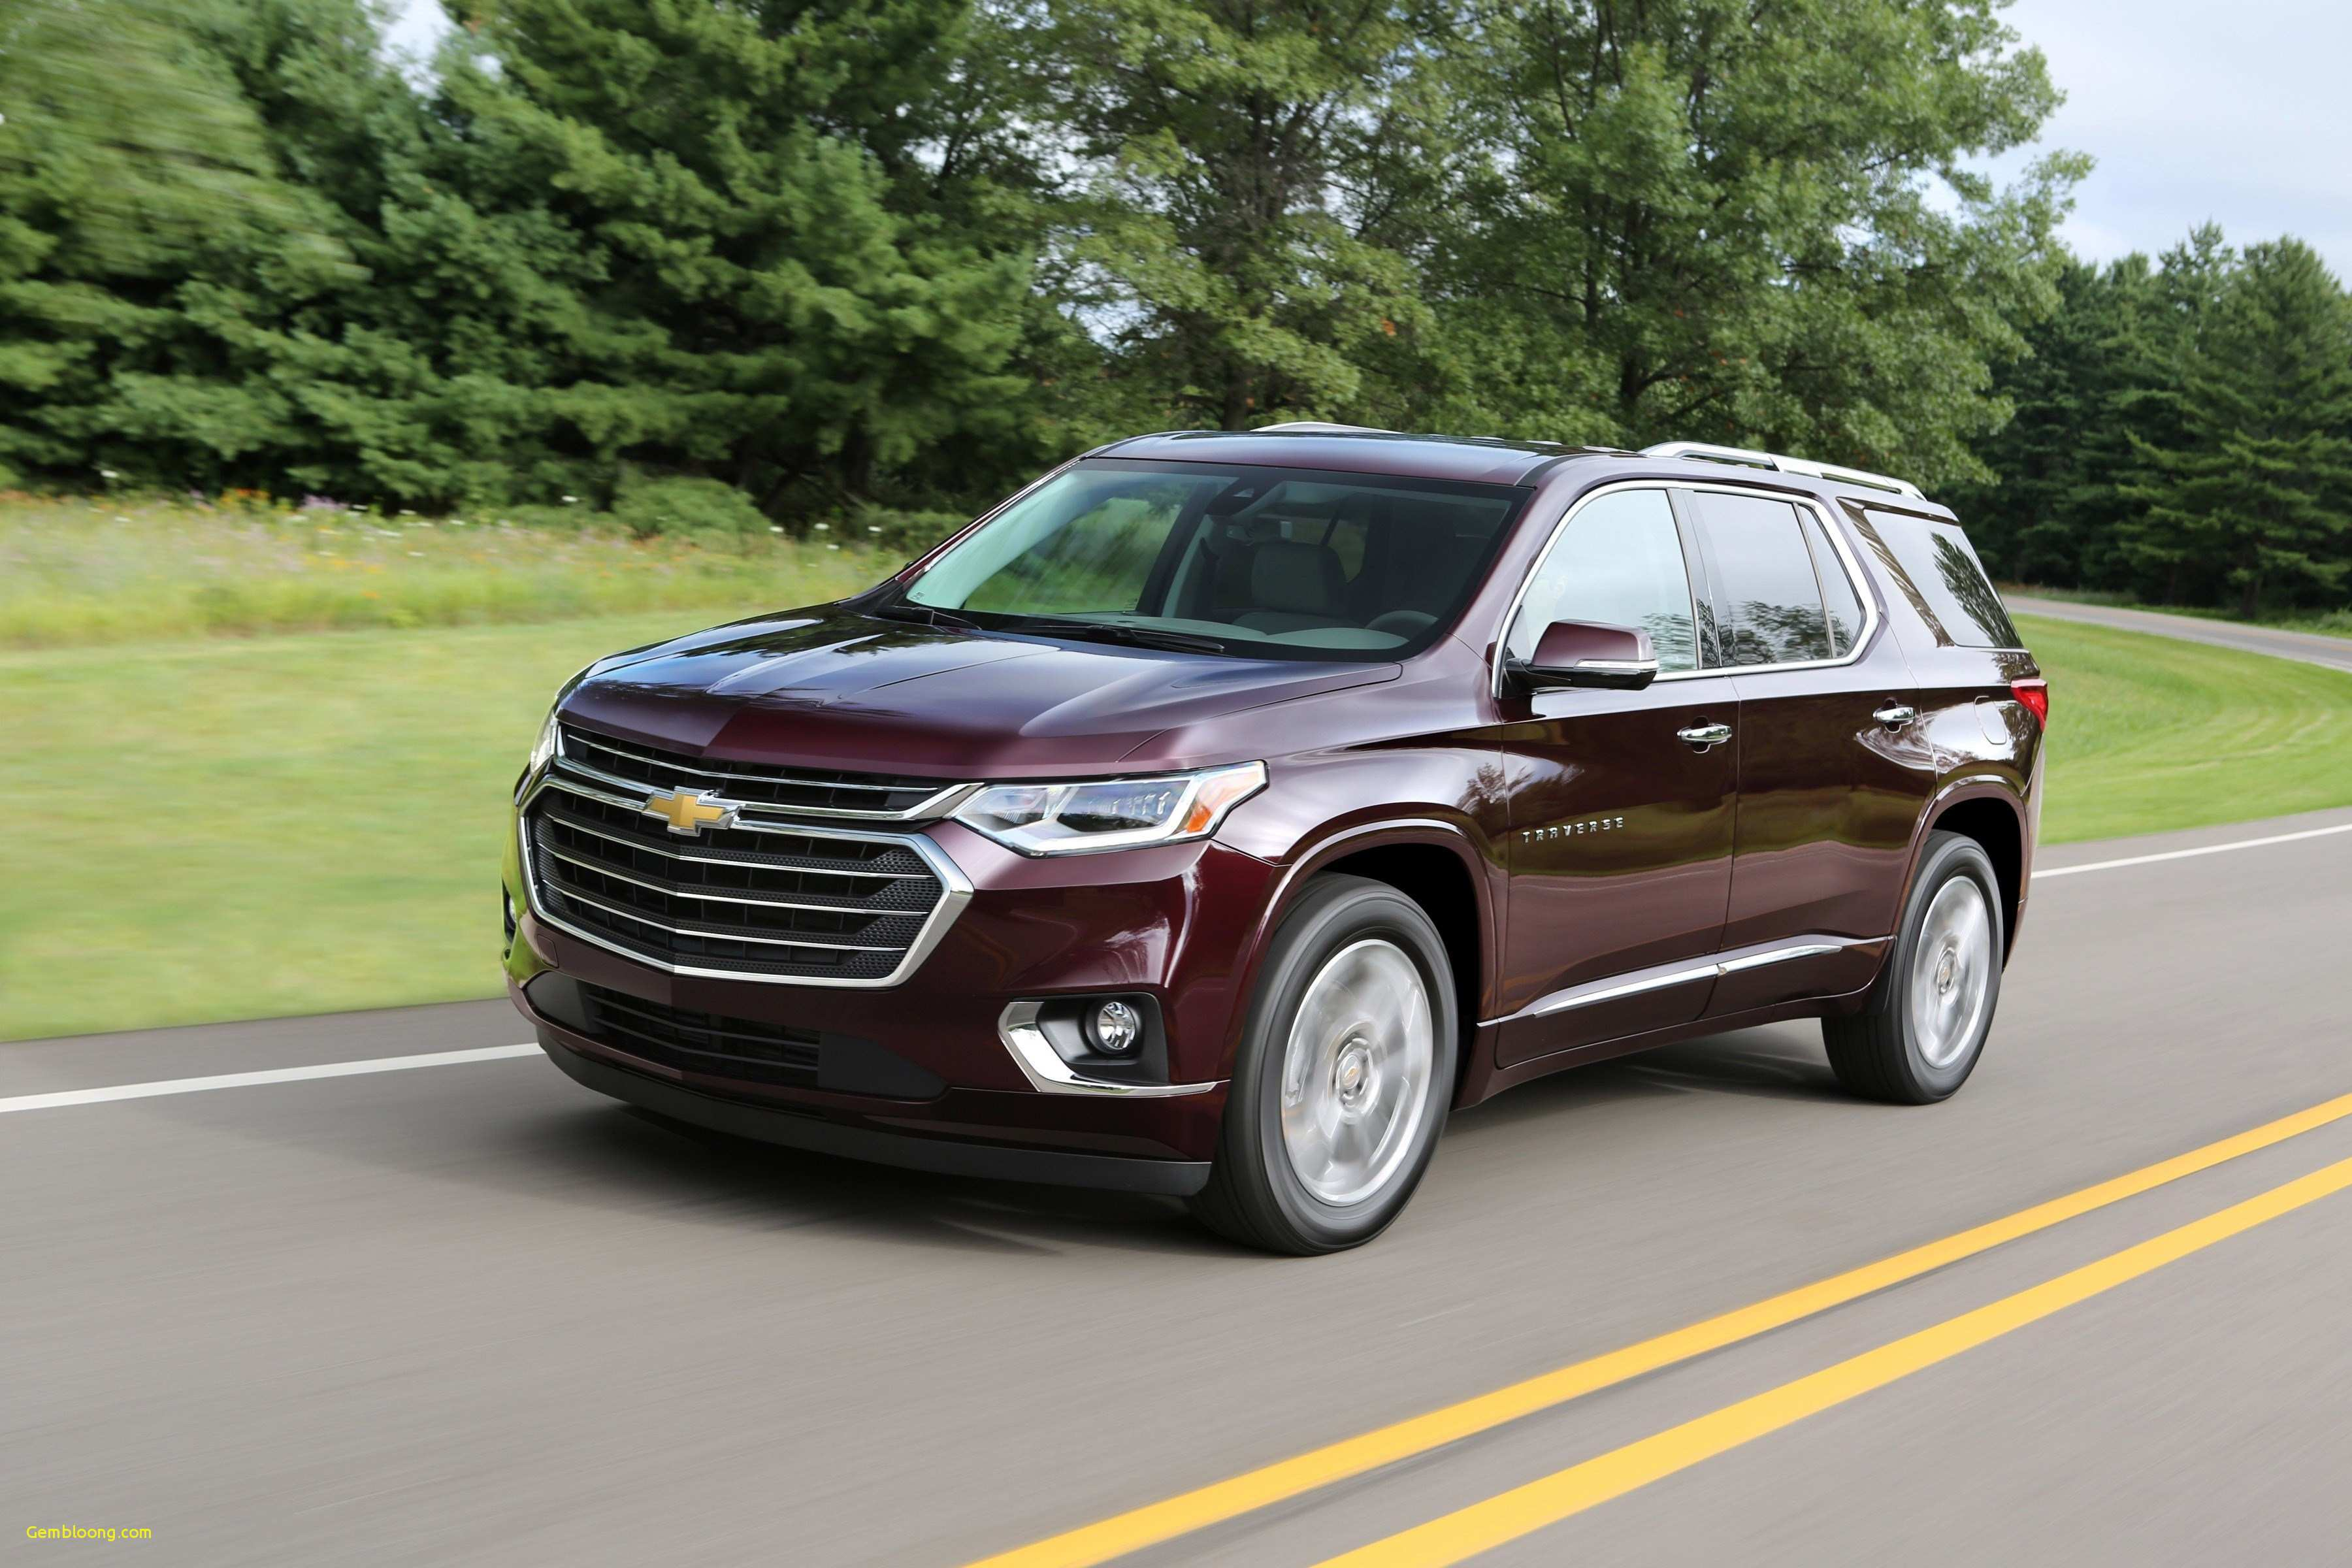 34 Best 2019 Chevy Trailblazer Ss Research New